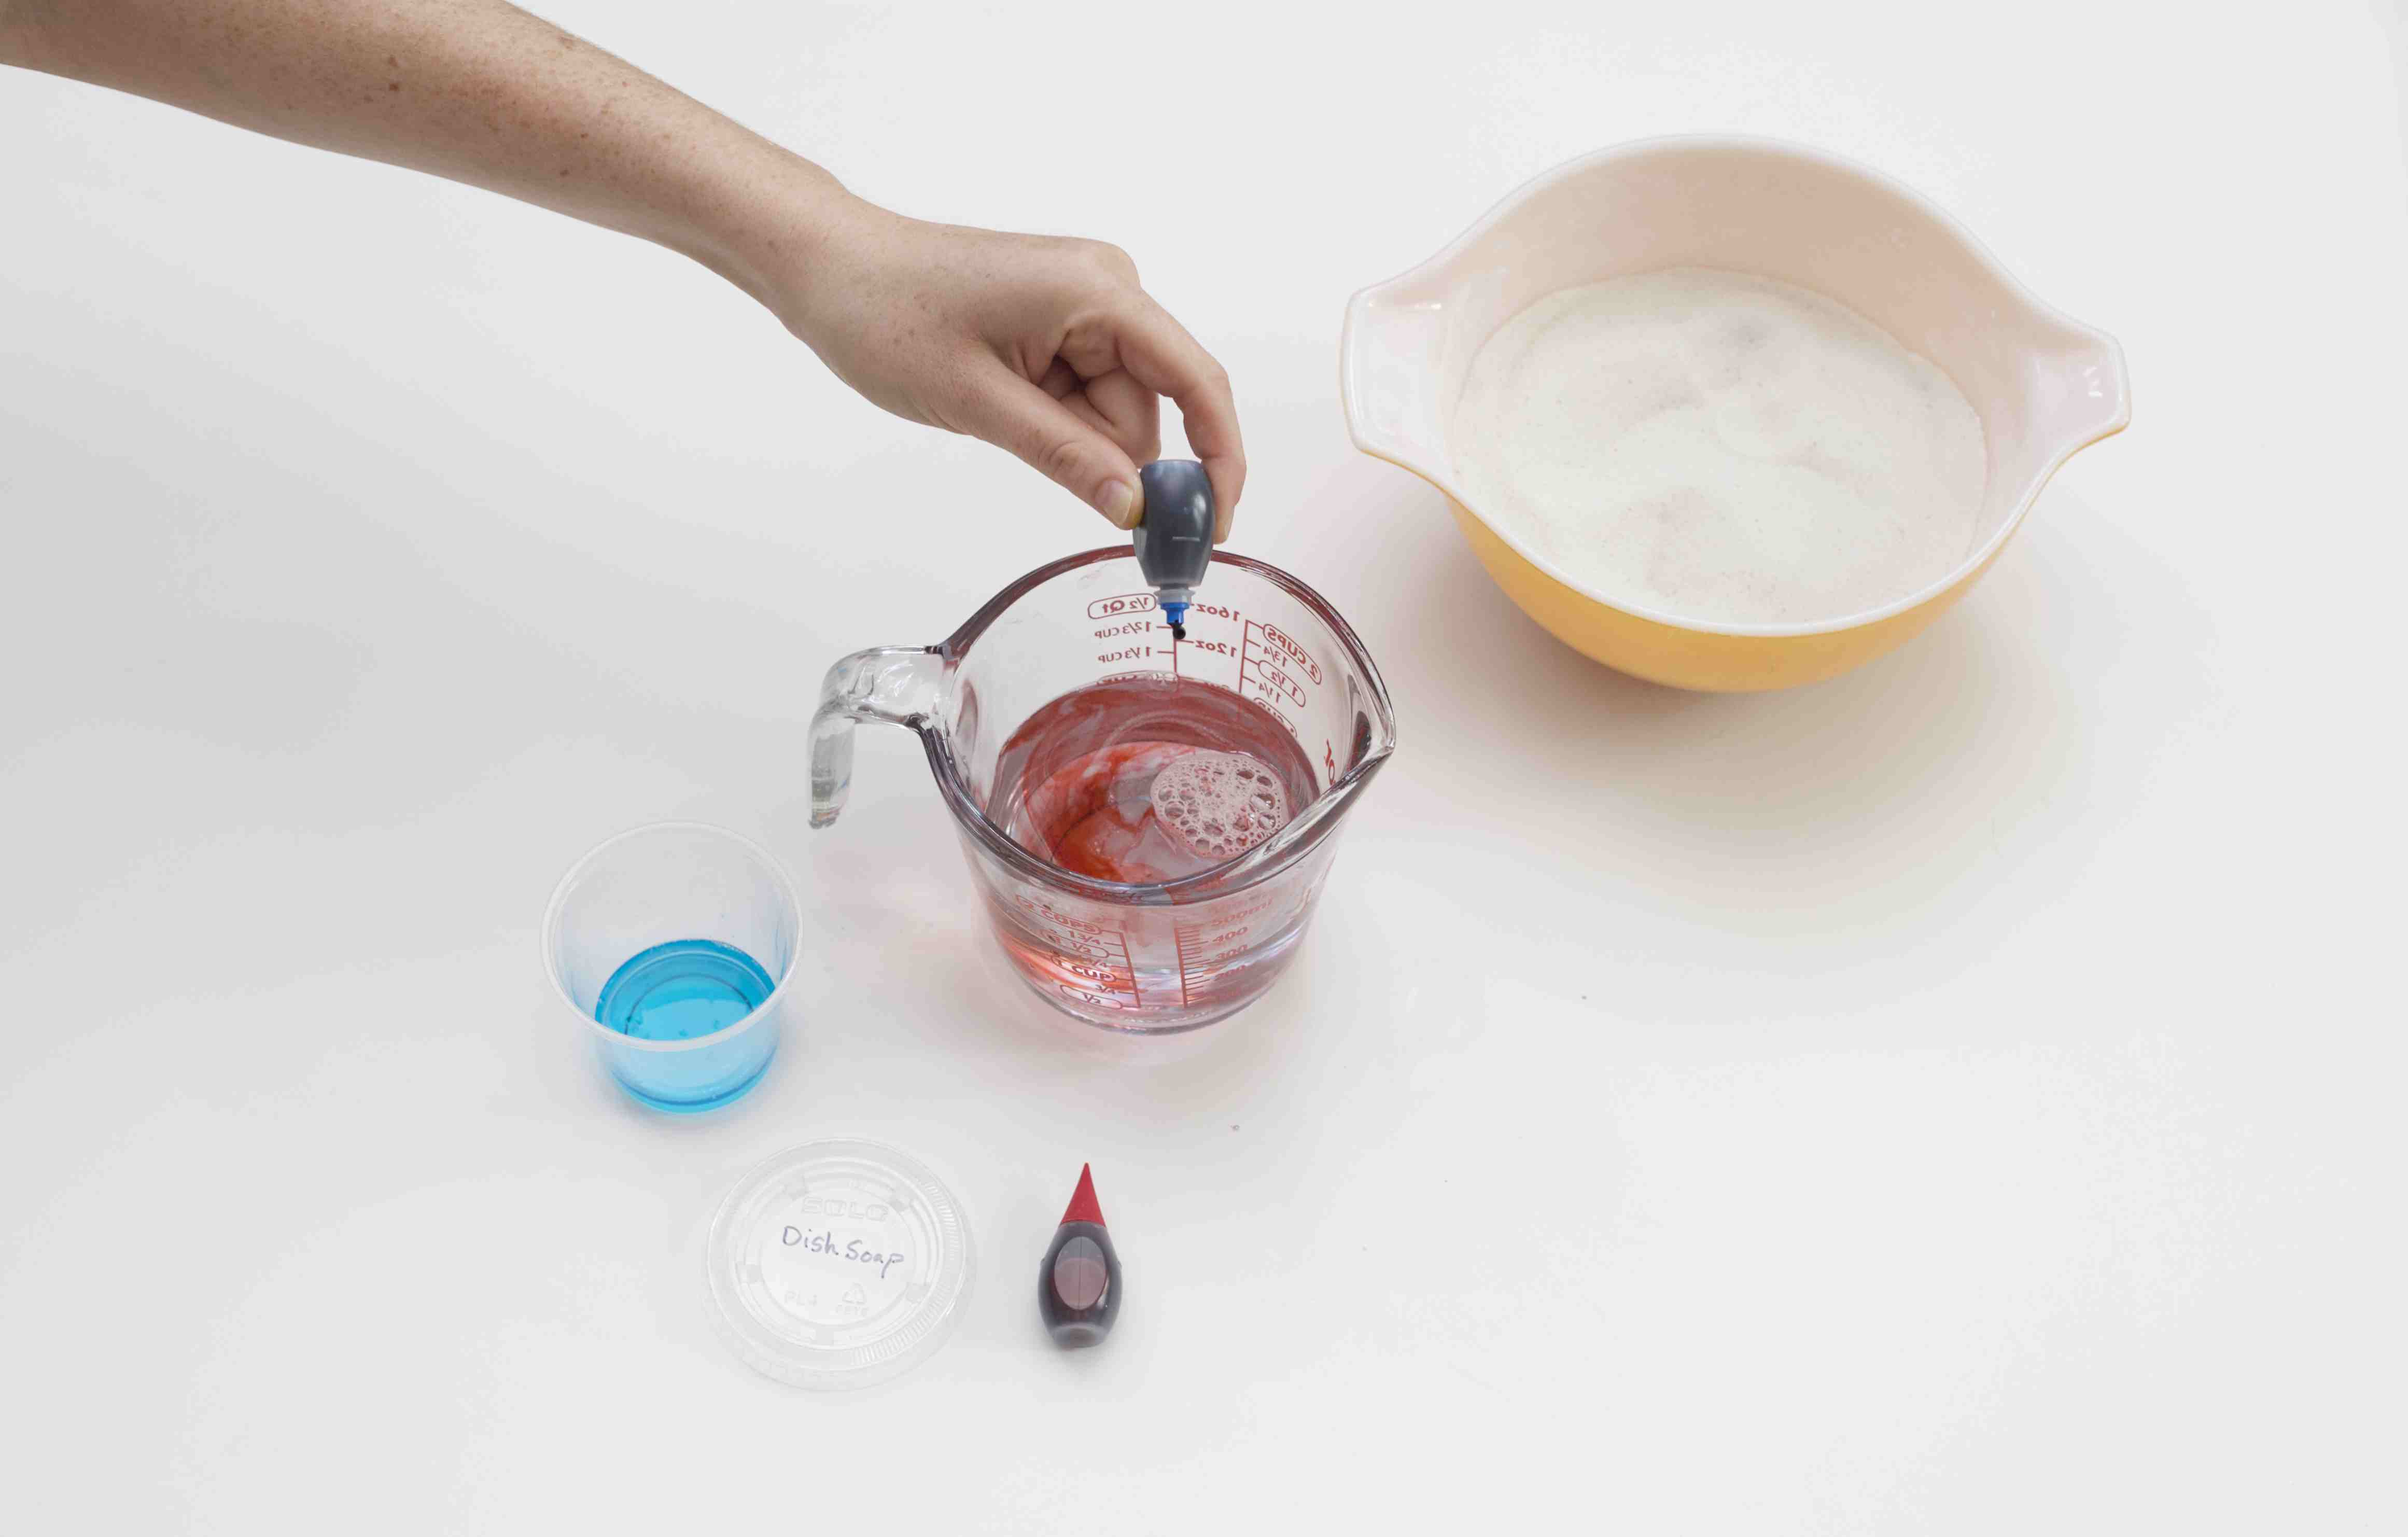 Adding food coloring to dish soap and water solution